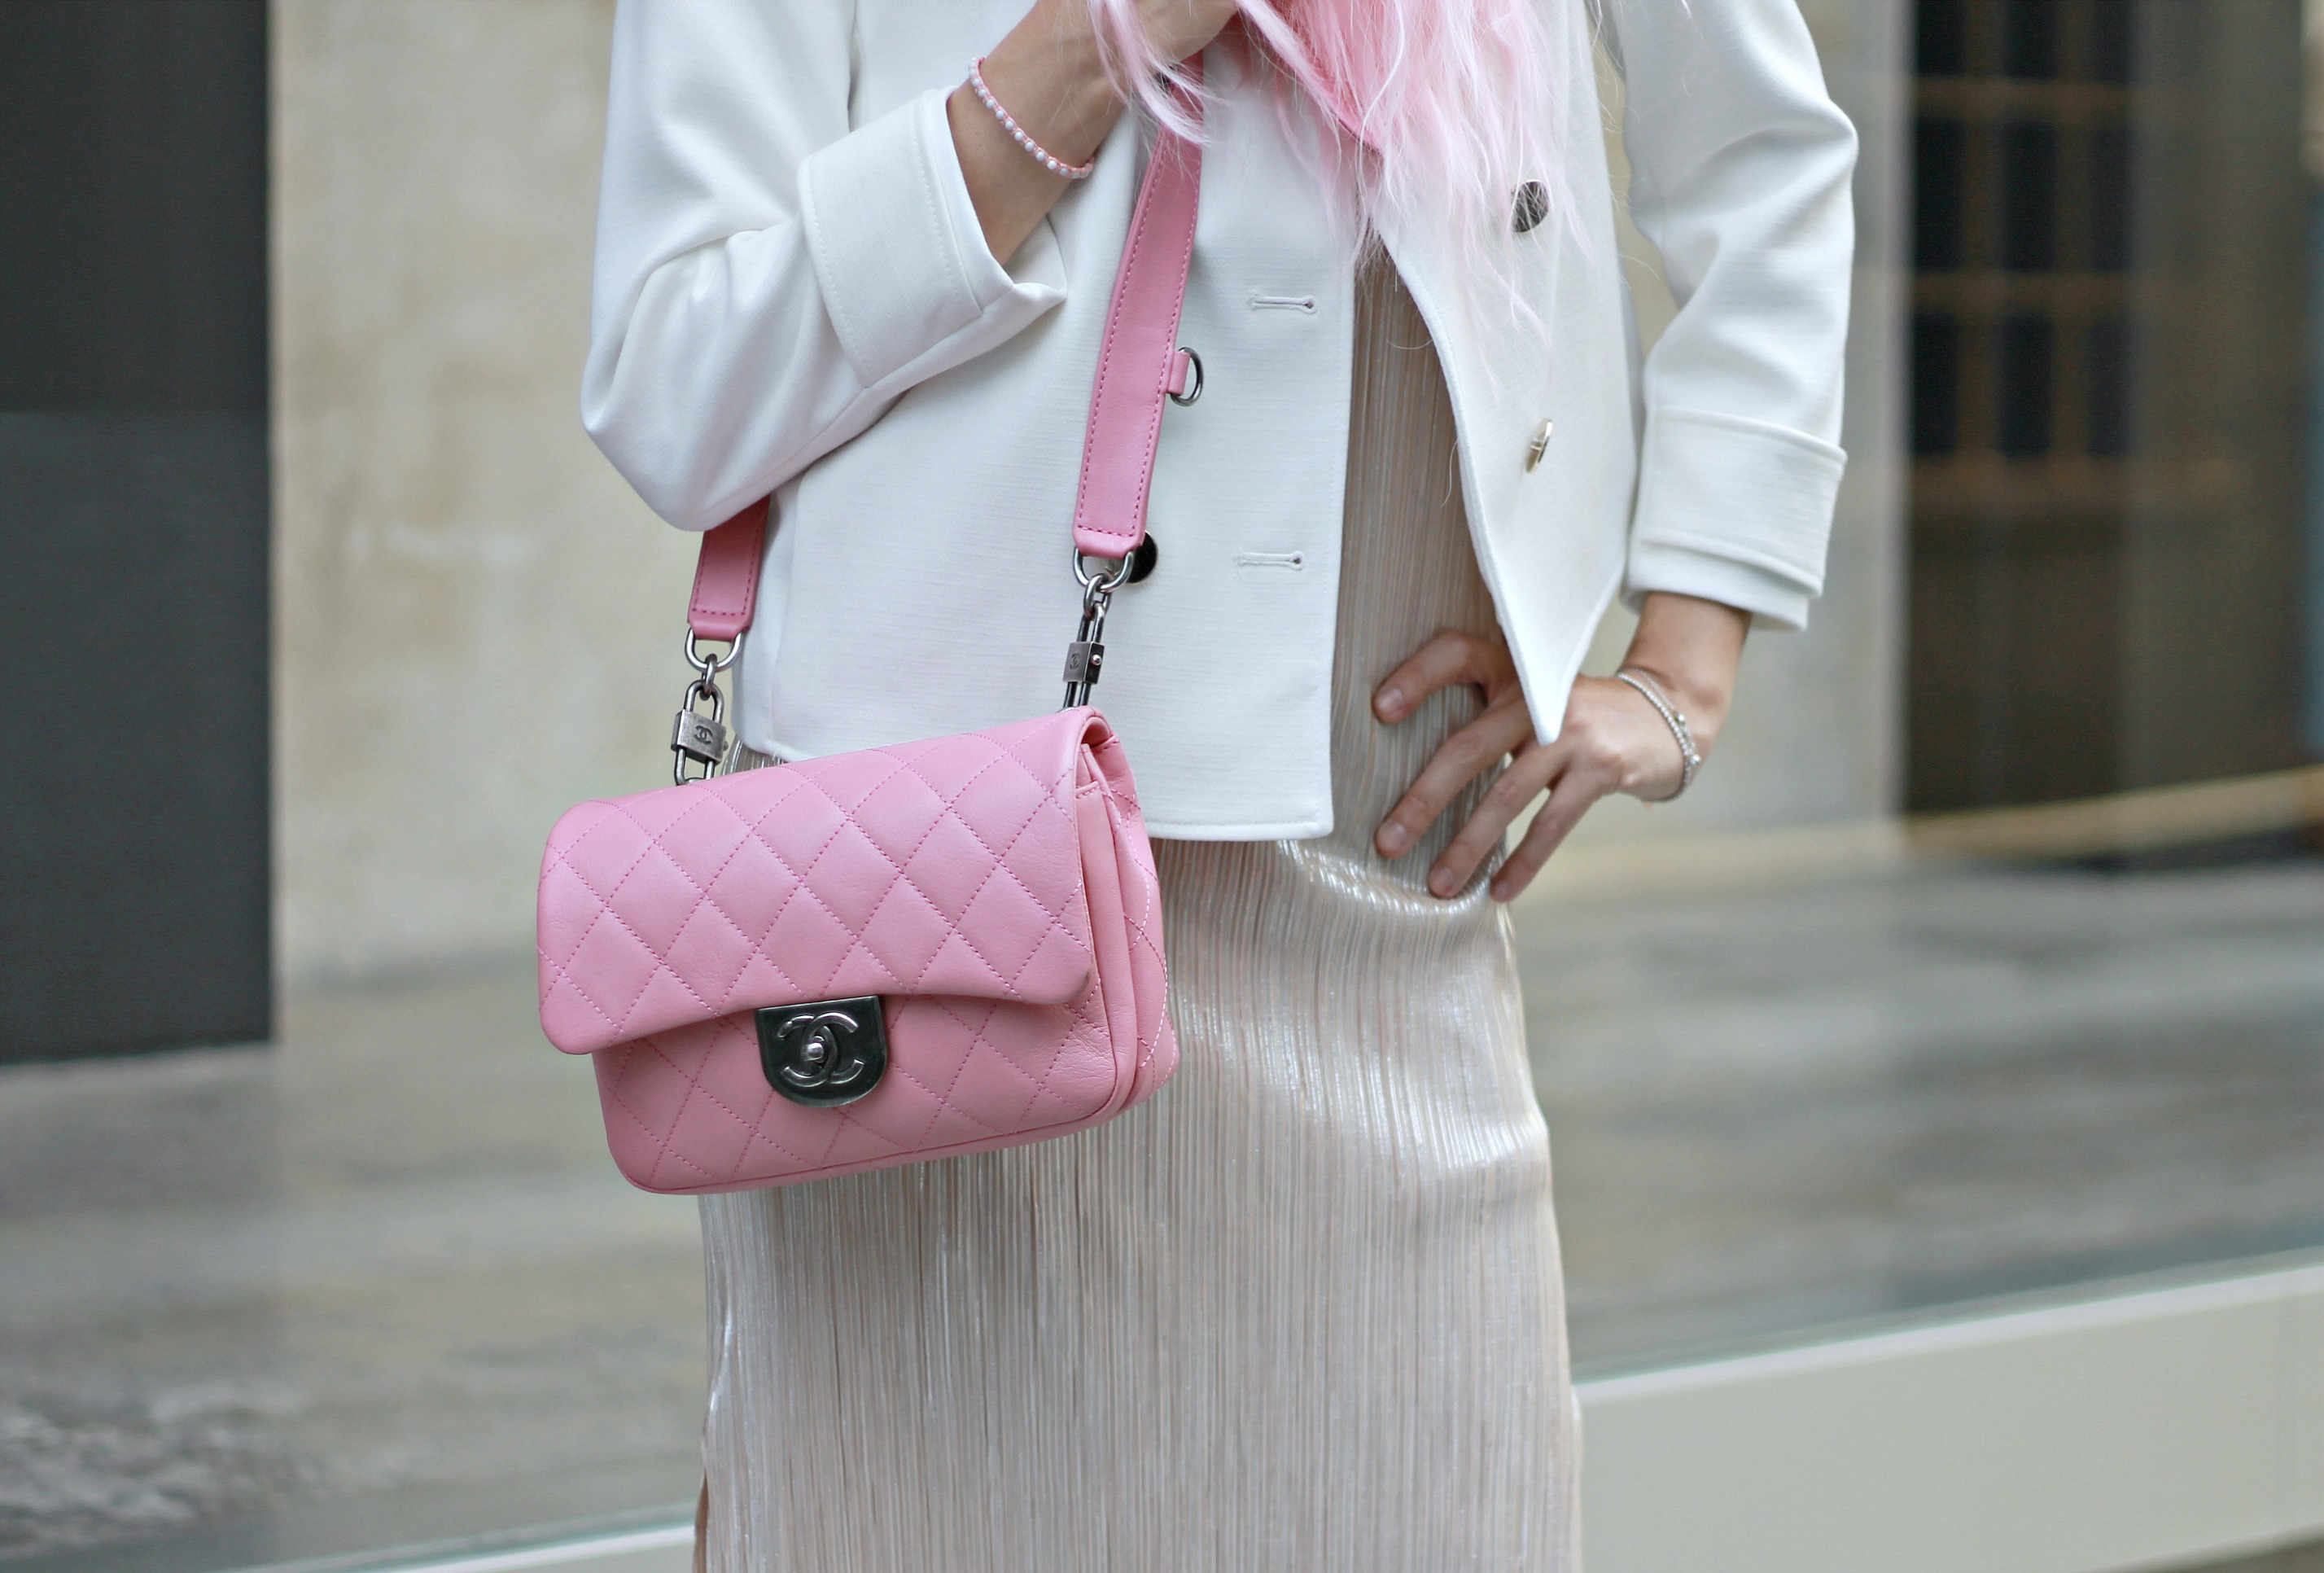 gucci cruise 2017, guccismo, theladycracy.it, elisa bellino, gucci alessandro michele opinioni, outfit blogger estate 2016, come si portano le sneakers con abito, vestito zara 2016, borsa chanel rosa originale, chanel pink bag authentic, pink long hair outfit blogger, kawaii, manga trucco, fondazione prada, fashion blog, fashion blogger italiane, fashion blogger famose 2016, fashion blogger italia 2016, fashion blog 2016, fashion influencer 2016, fashion blogger milano 2016, fashion blogger outfit estate 2016, cosa va di moda, sporty chic outfit estate 2016, reebook classic outfit,